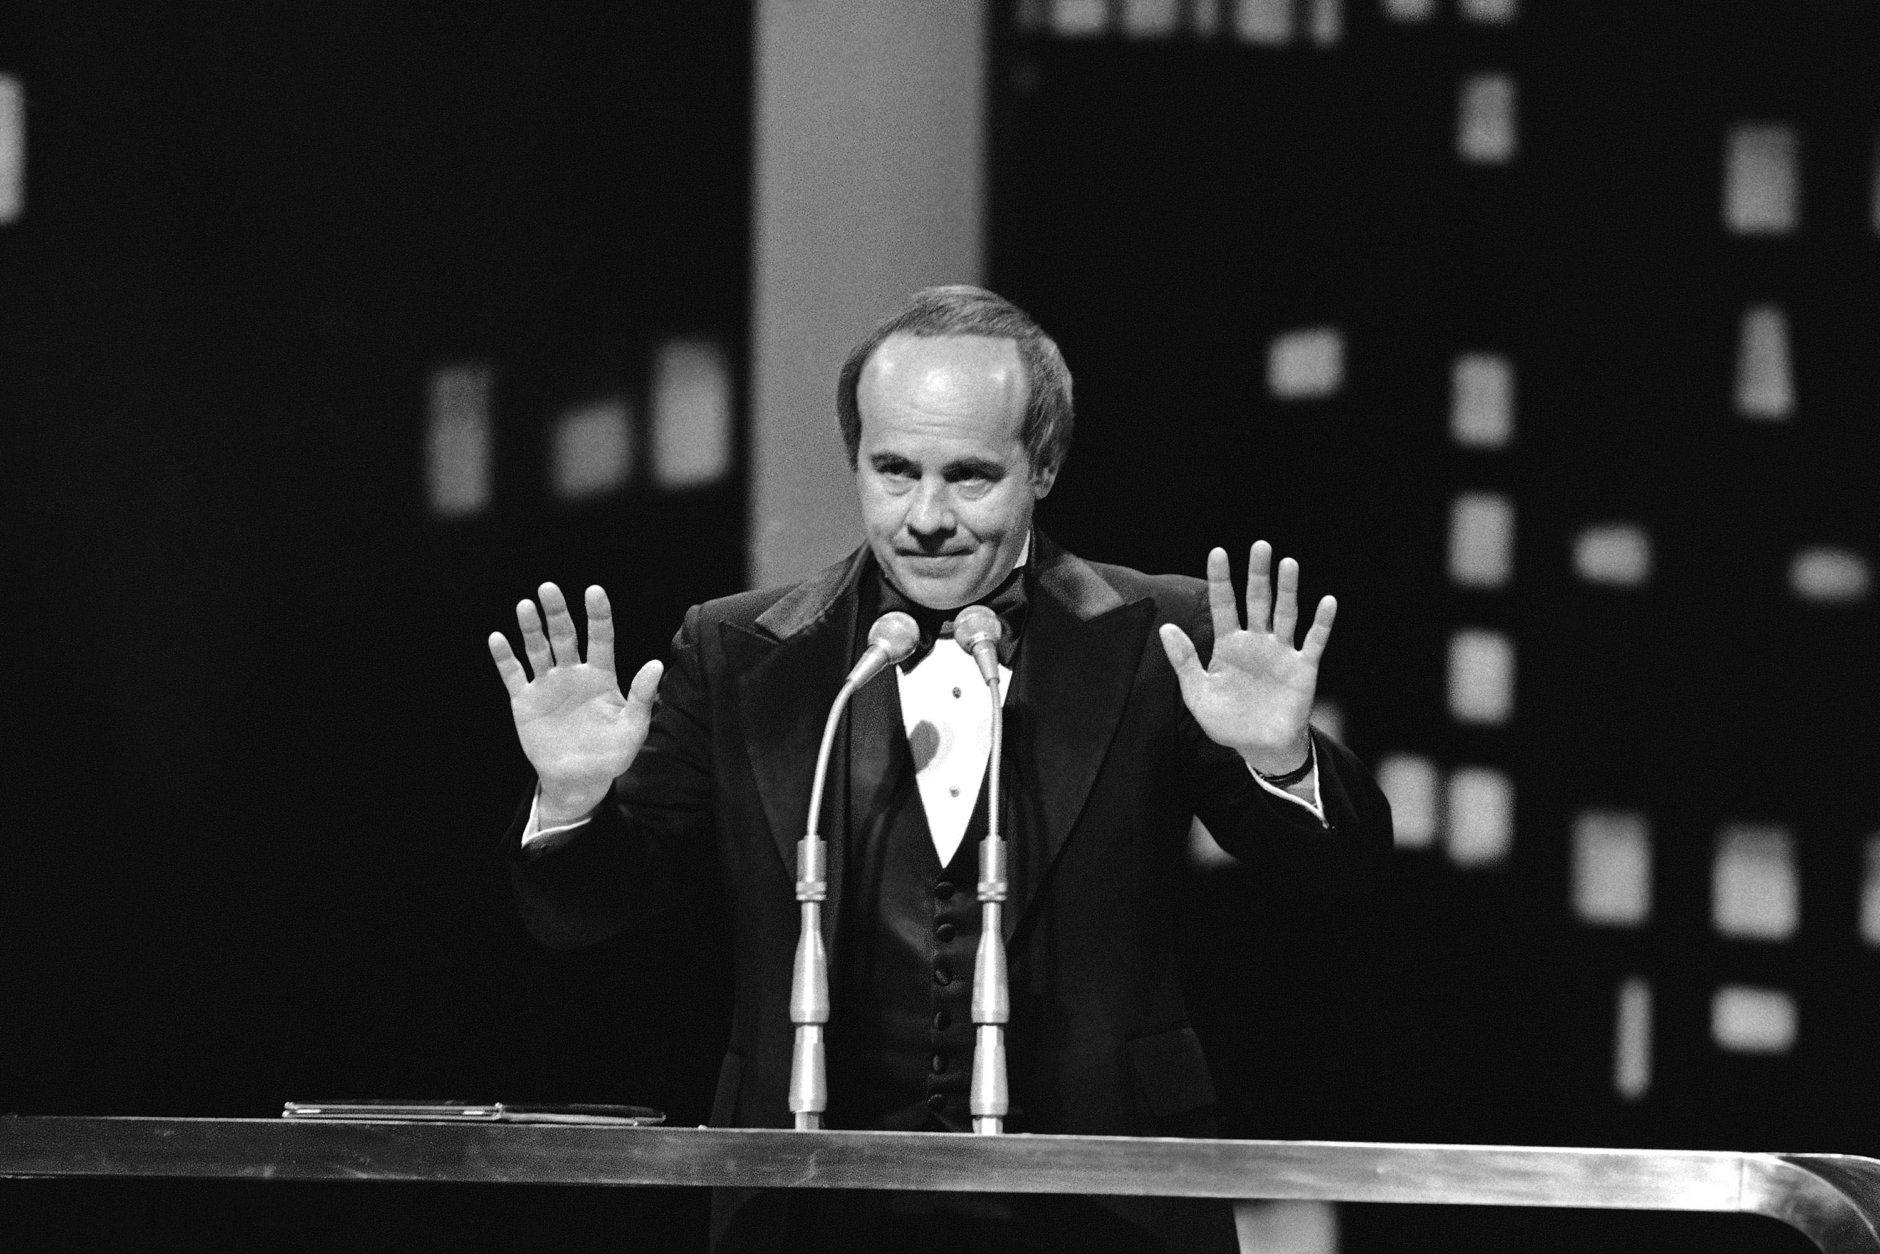 Tim Conway at the People?s Choice Awards held in Los Angeles, California, on Feb. 20, 1978. (AP Photo/JLR)